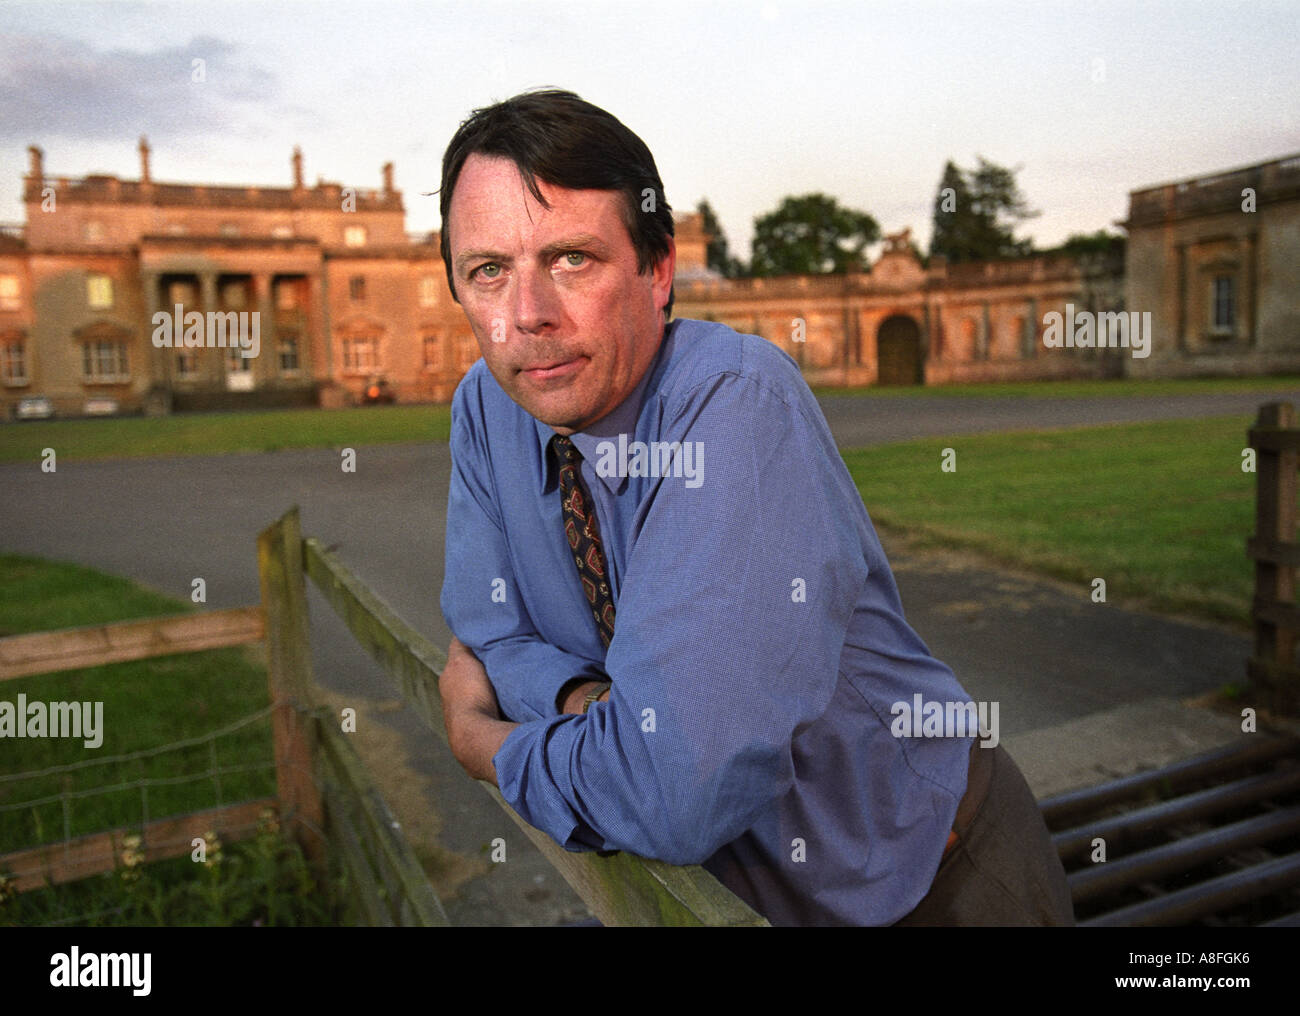 THE EARL OF CARDIGAN OUTSIDE TOTTENHAM HOUSE WHICH WAS THE FAMILY HOME IN PREVIOUS GENERATIONS JUNE 2001 - Stock Image